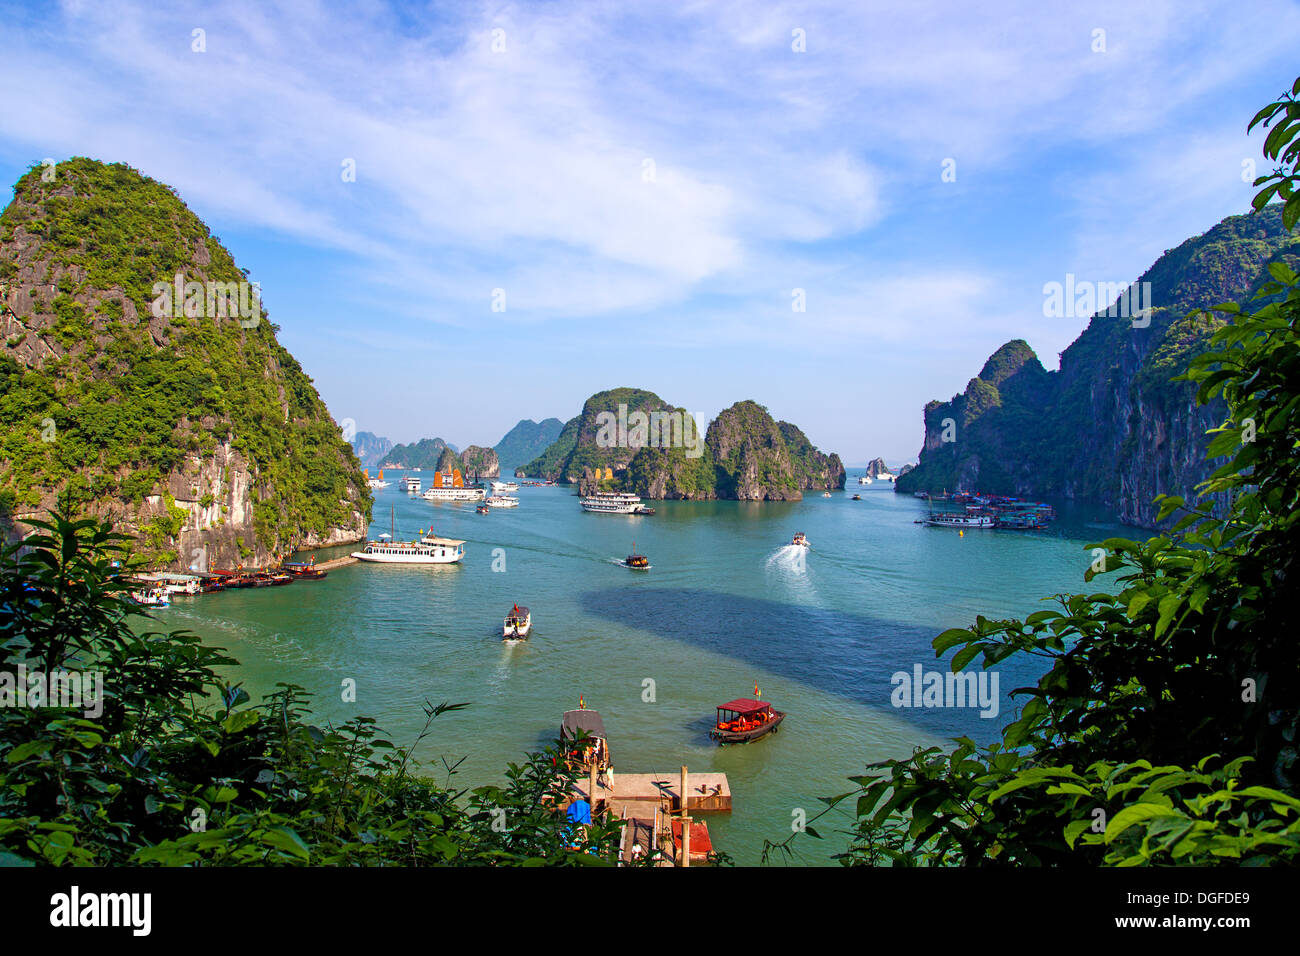 Vue de la Baie d'Ha Long au Vietnam Photo Stock